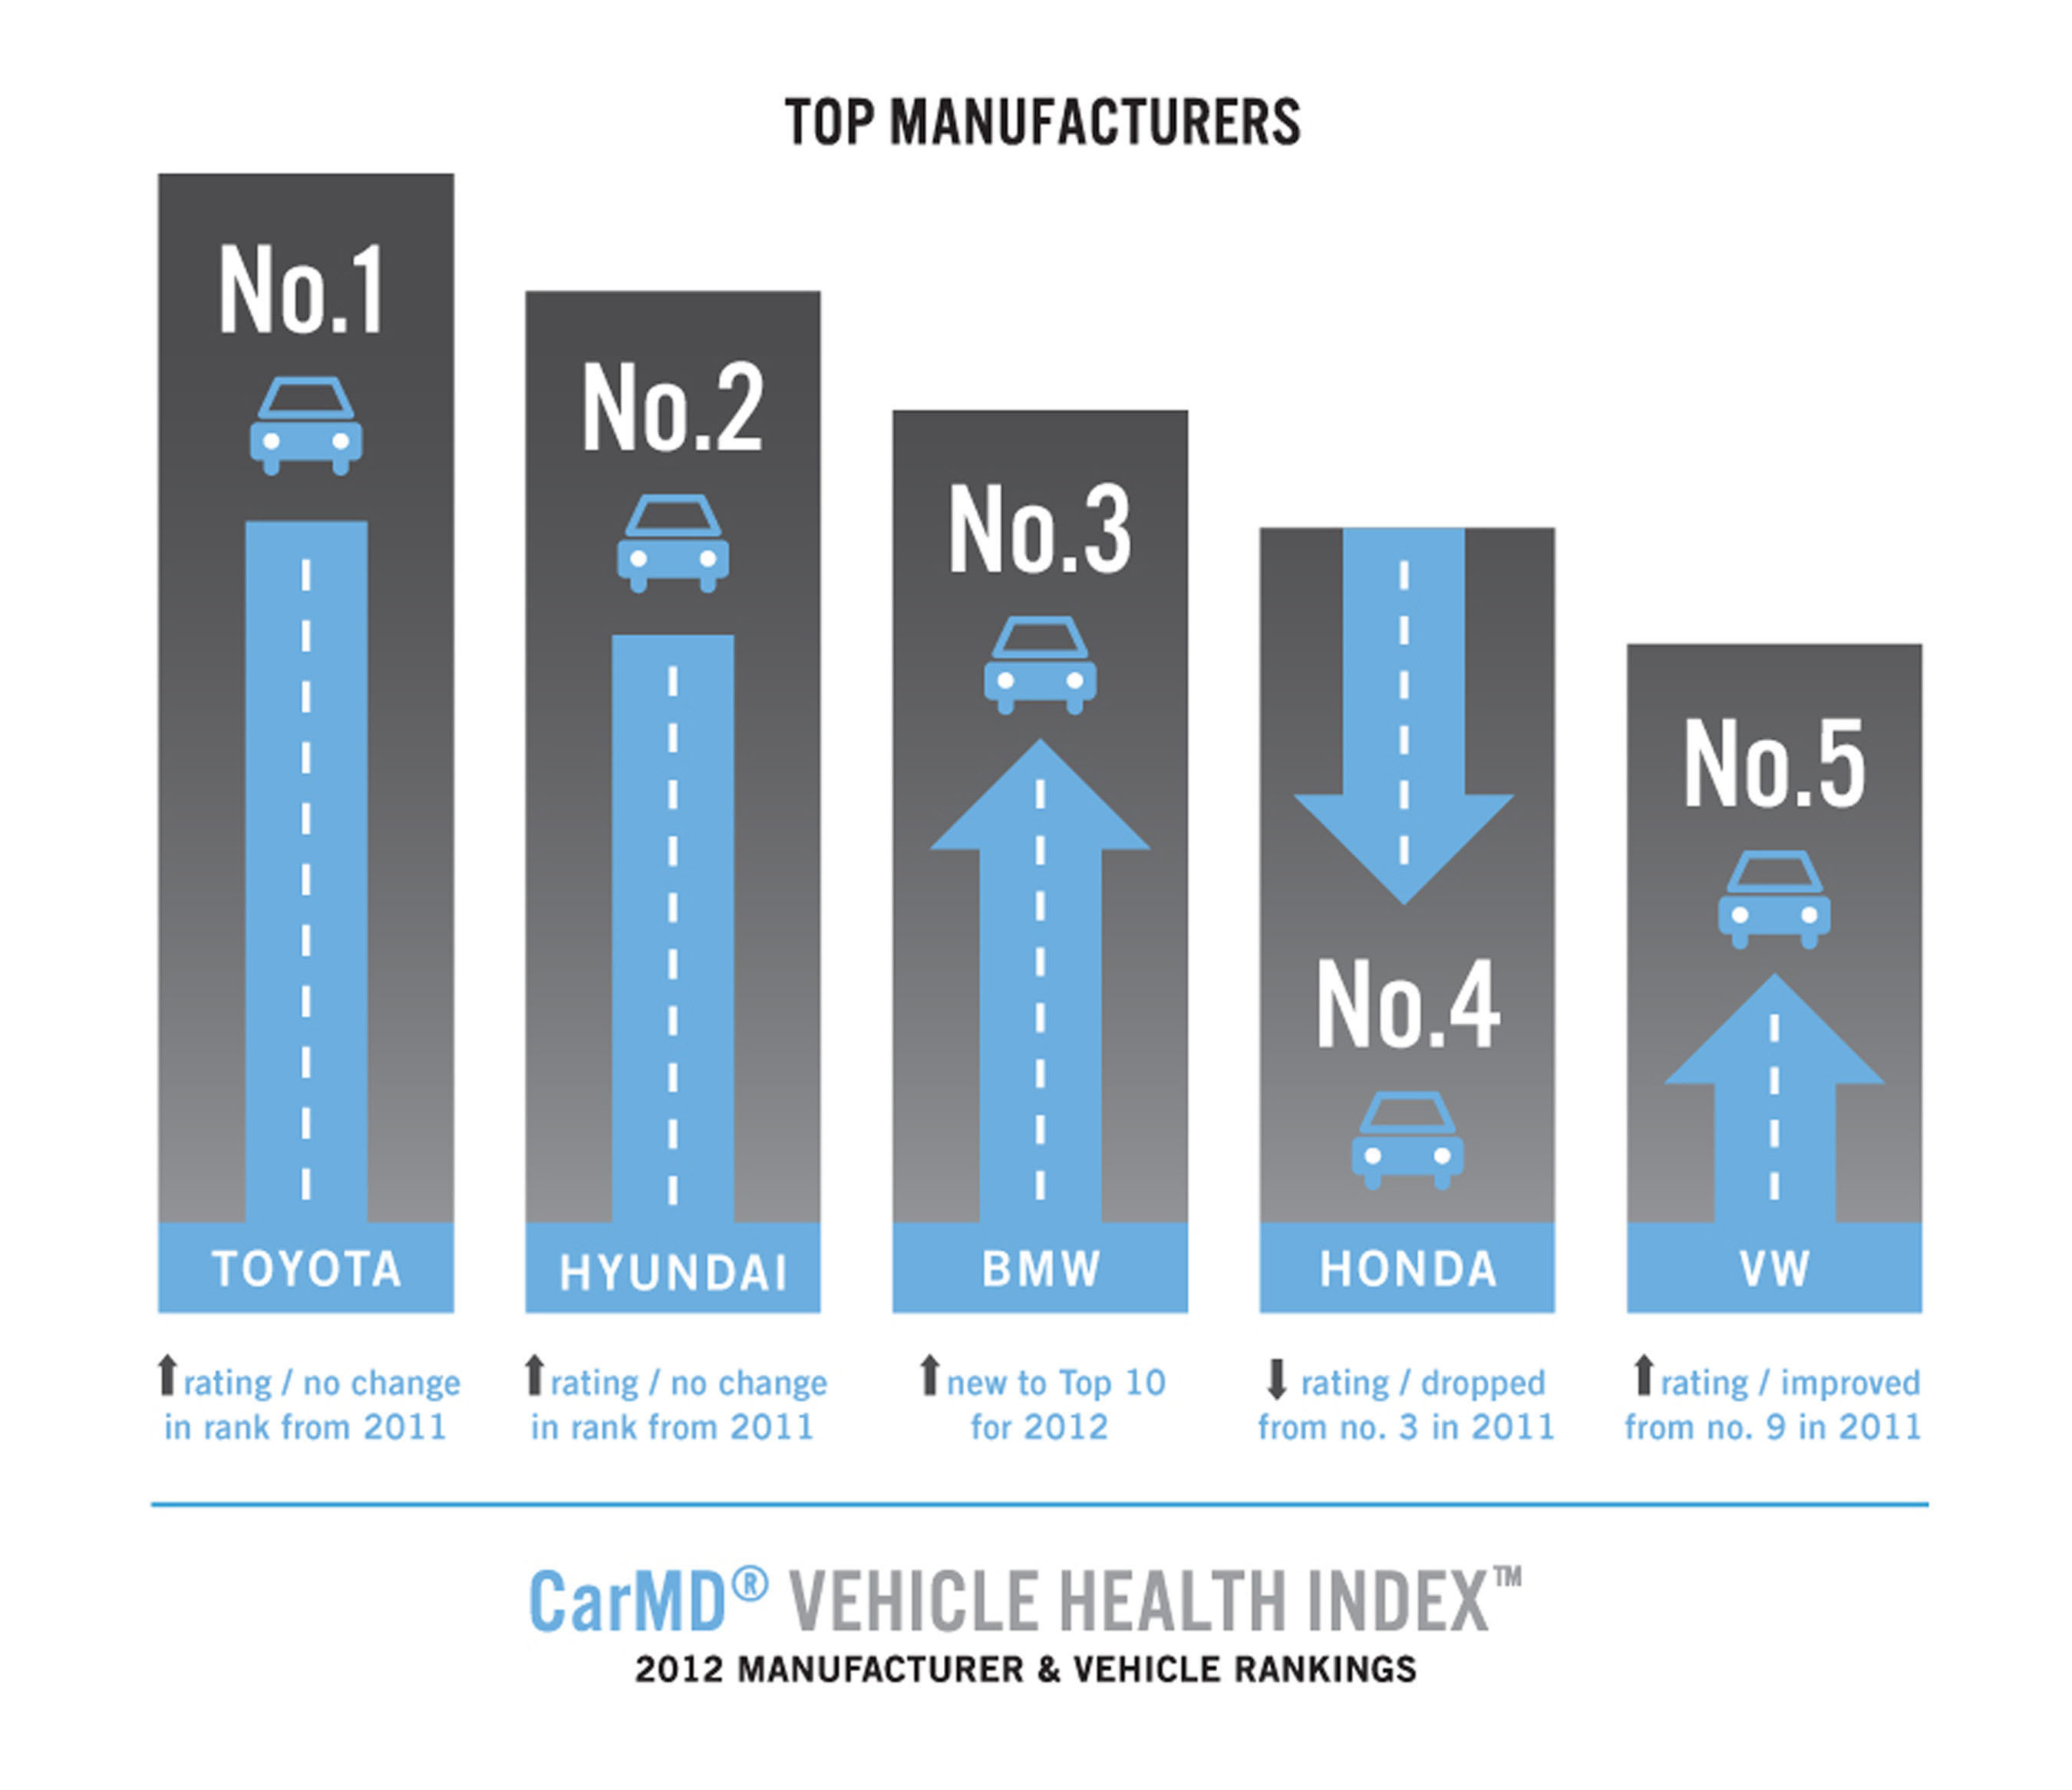 CarMD Vehicle Health Index Manufacturer & Vehicle Rankings Top 5 Automotive Manufacturers of 2012.  Visit http://corp.carmd.com for all current and archived CarMD indices.  (PRNewsFoto/CarMD.com)